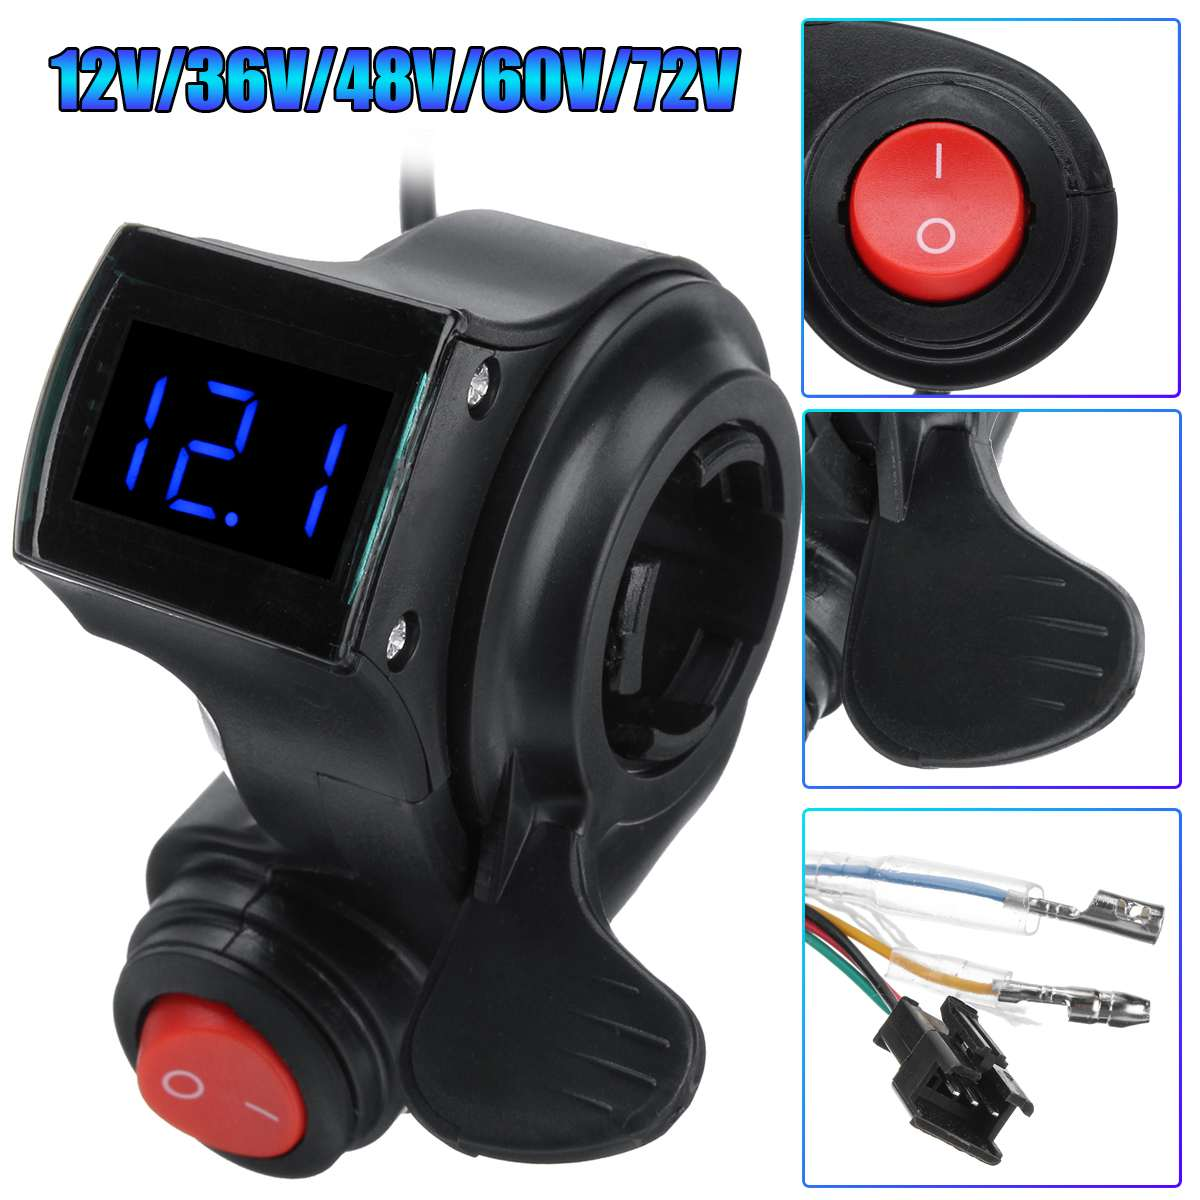 Accessories Selfless Finger Thumb Throttle Electric Scooter With Power Switch Led Display Switch Handlebar Grips For Electric Bike 36v/48/60/72v Beautiful And Charming